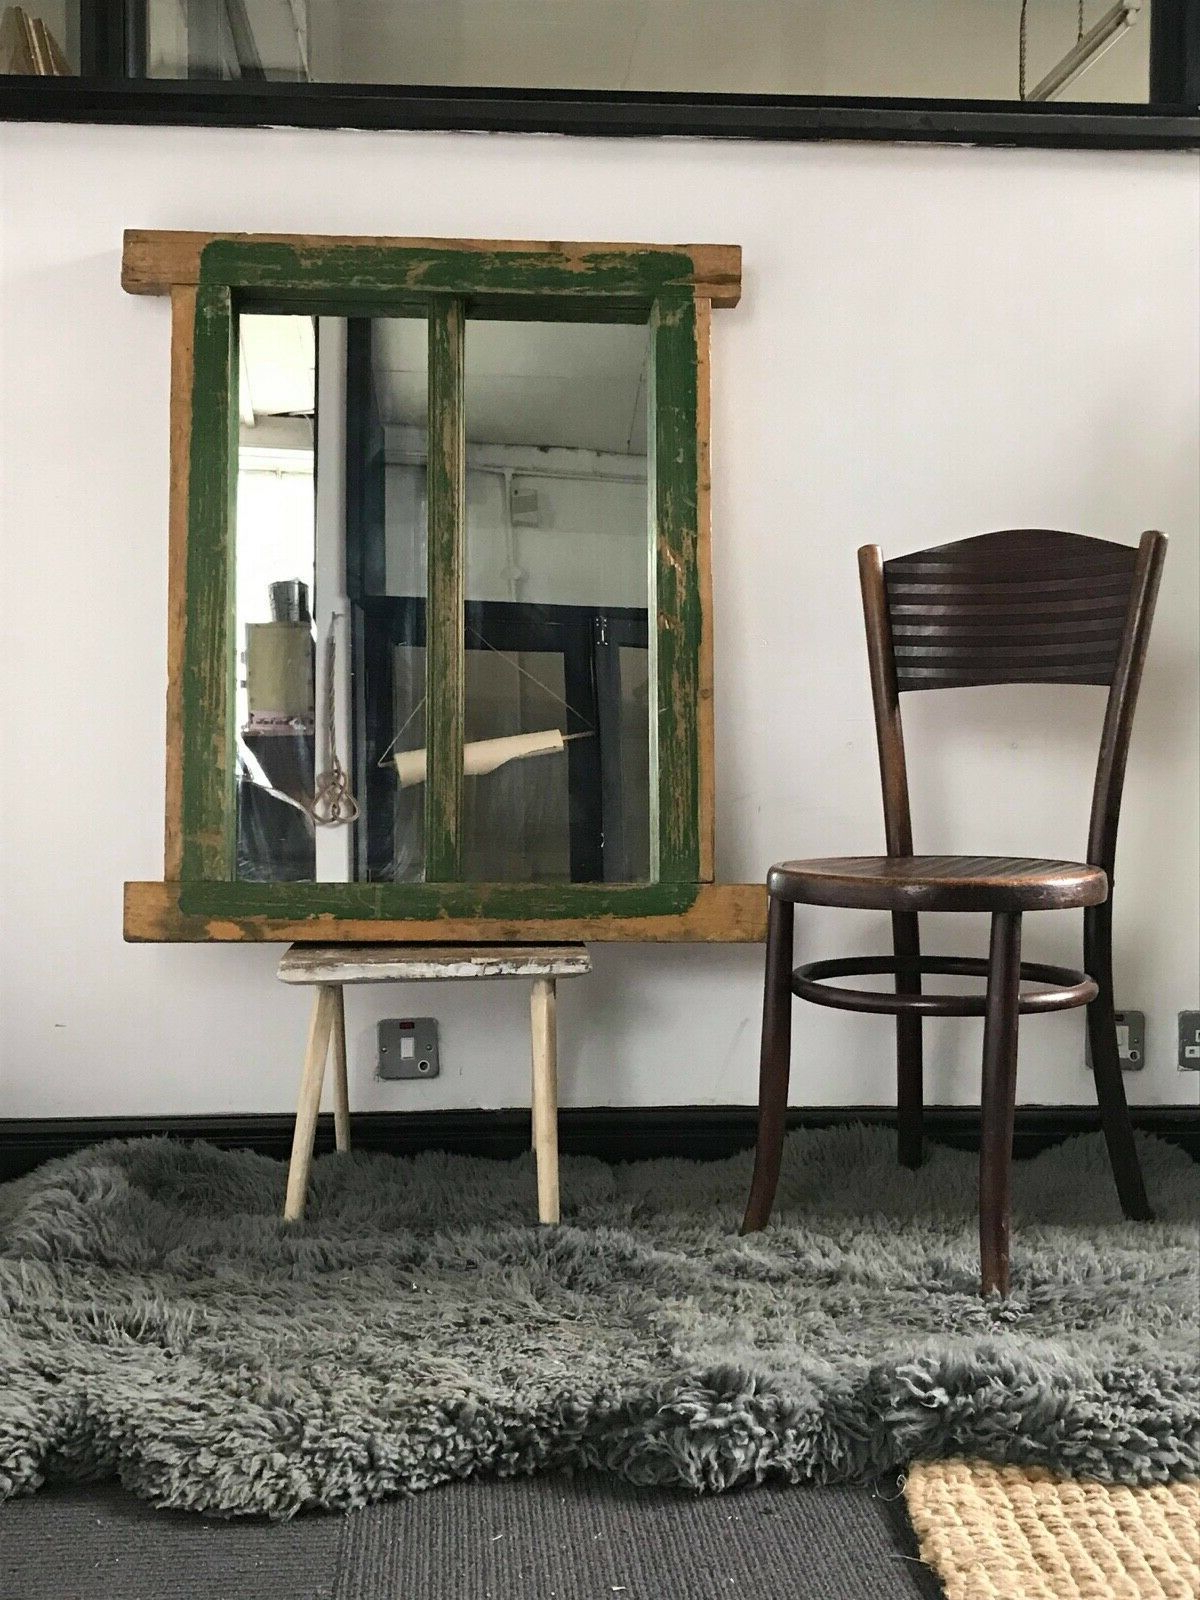 Antique Large French Chalet Heavy Painted Window Frame Unique Wall Mirror With Preferred Unique Wall Mirrors (View 11 of 20)